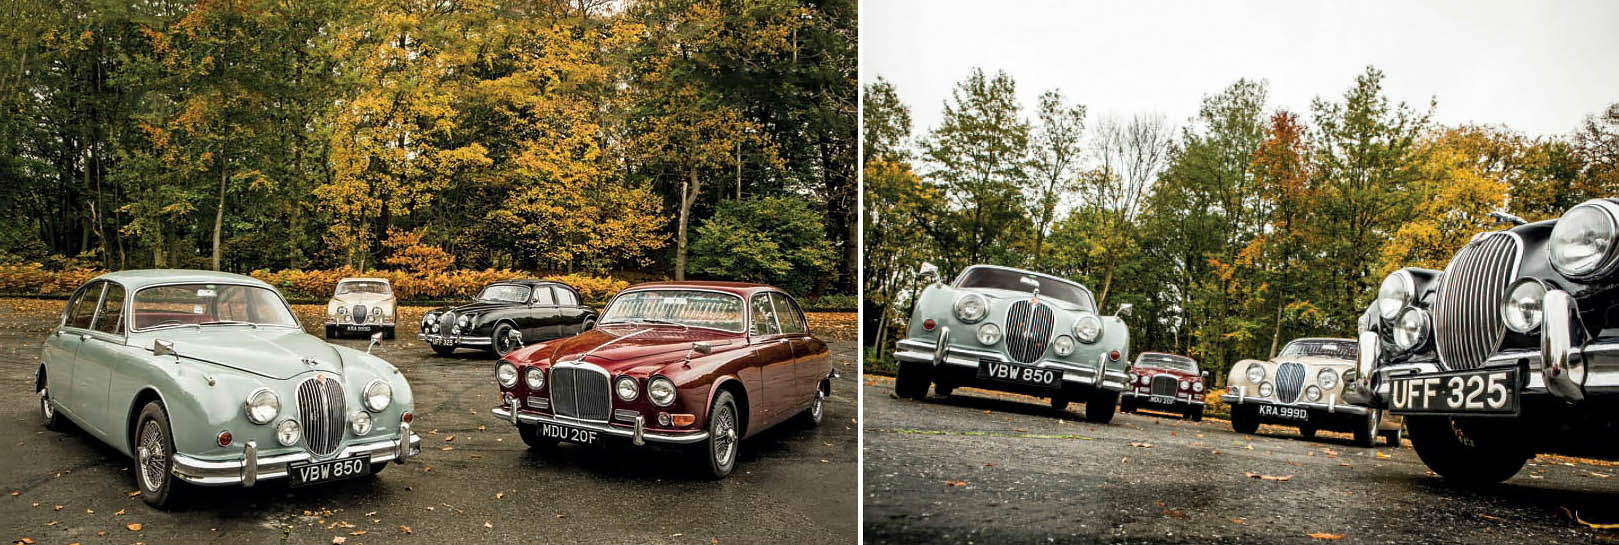 Drive Jaguar's fabulous line of saloons, from the Mk1, Mk2, S-type and 420